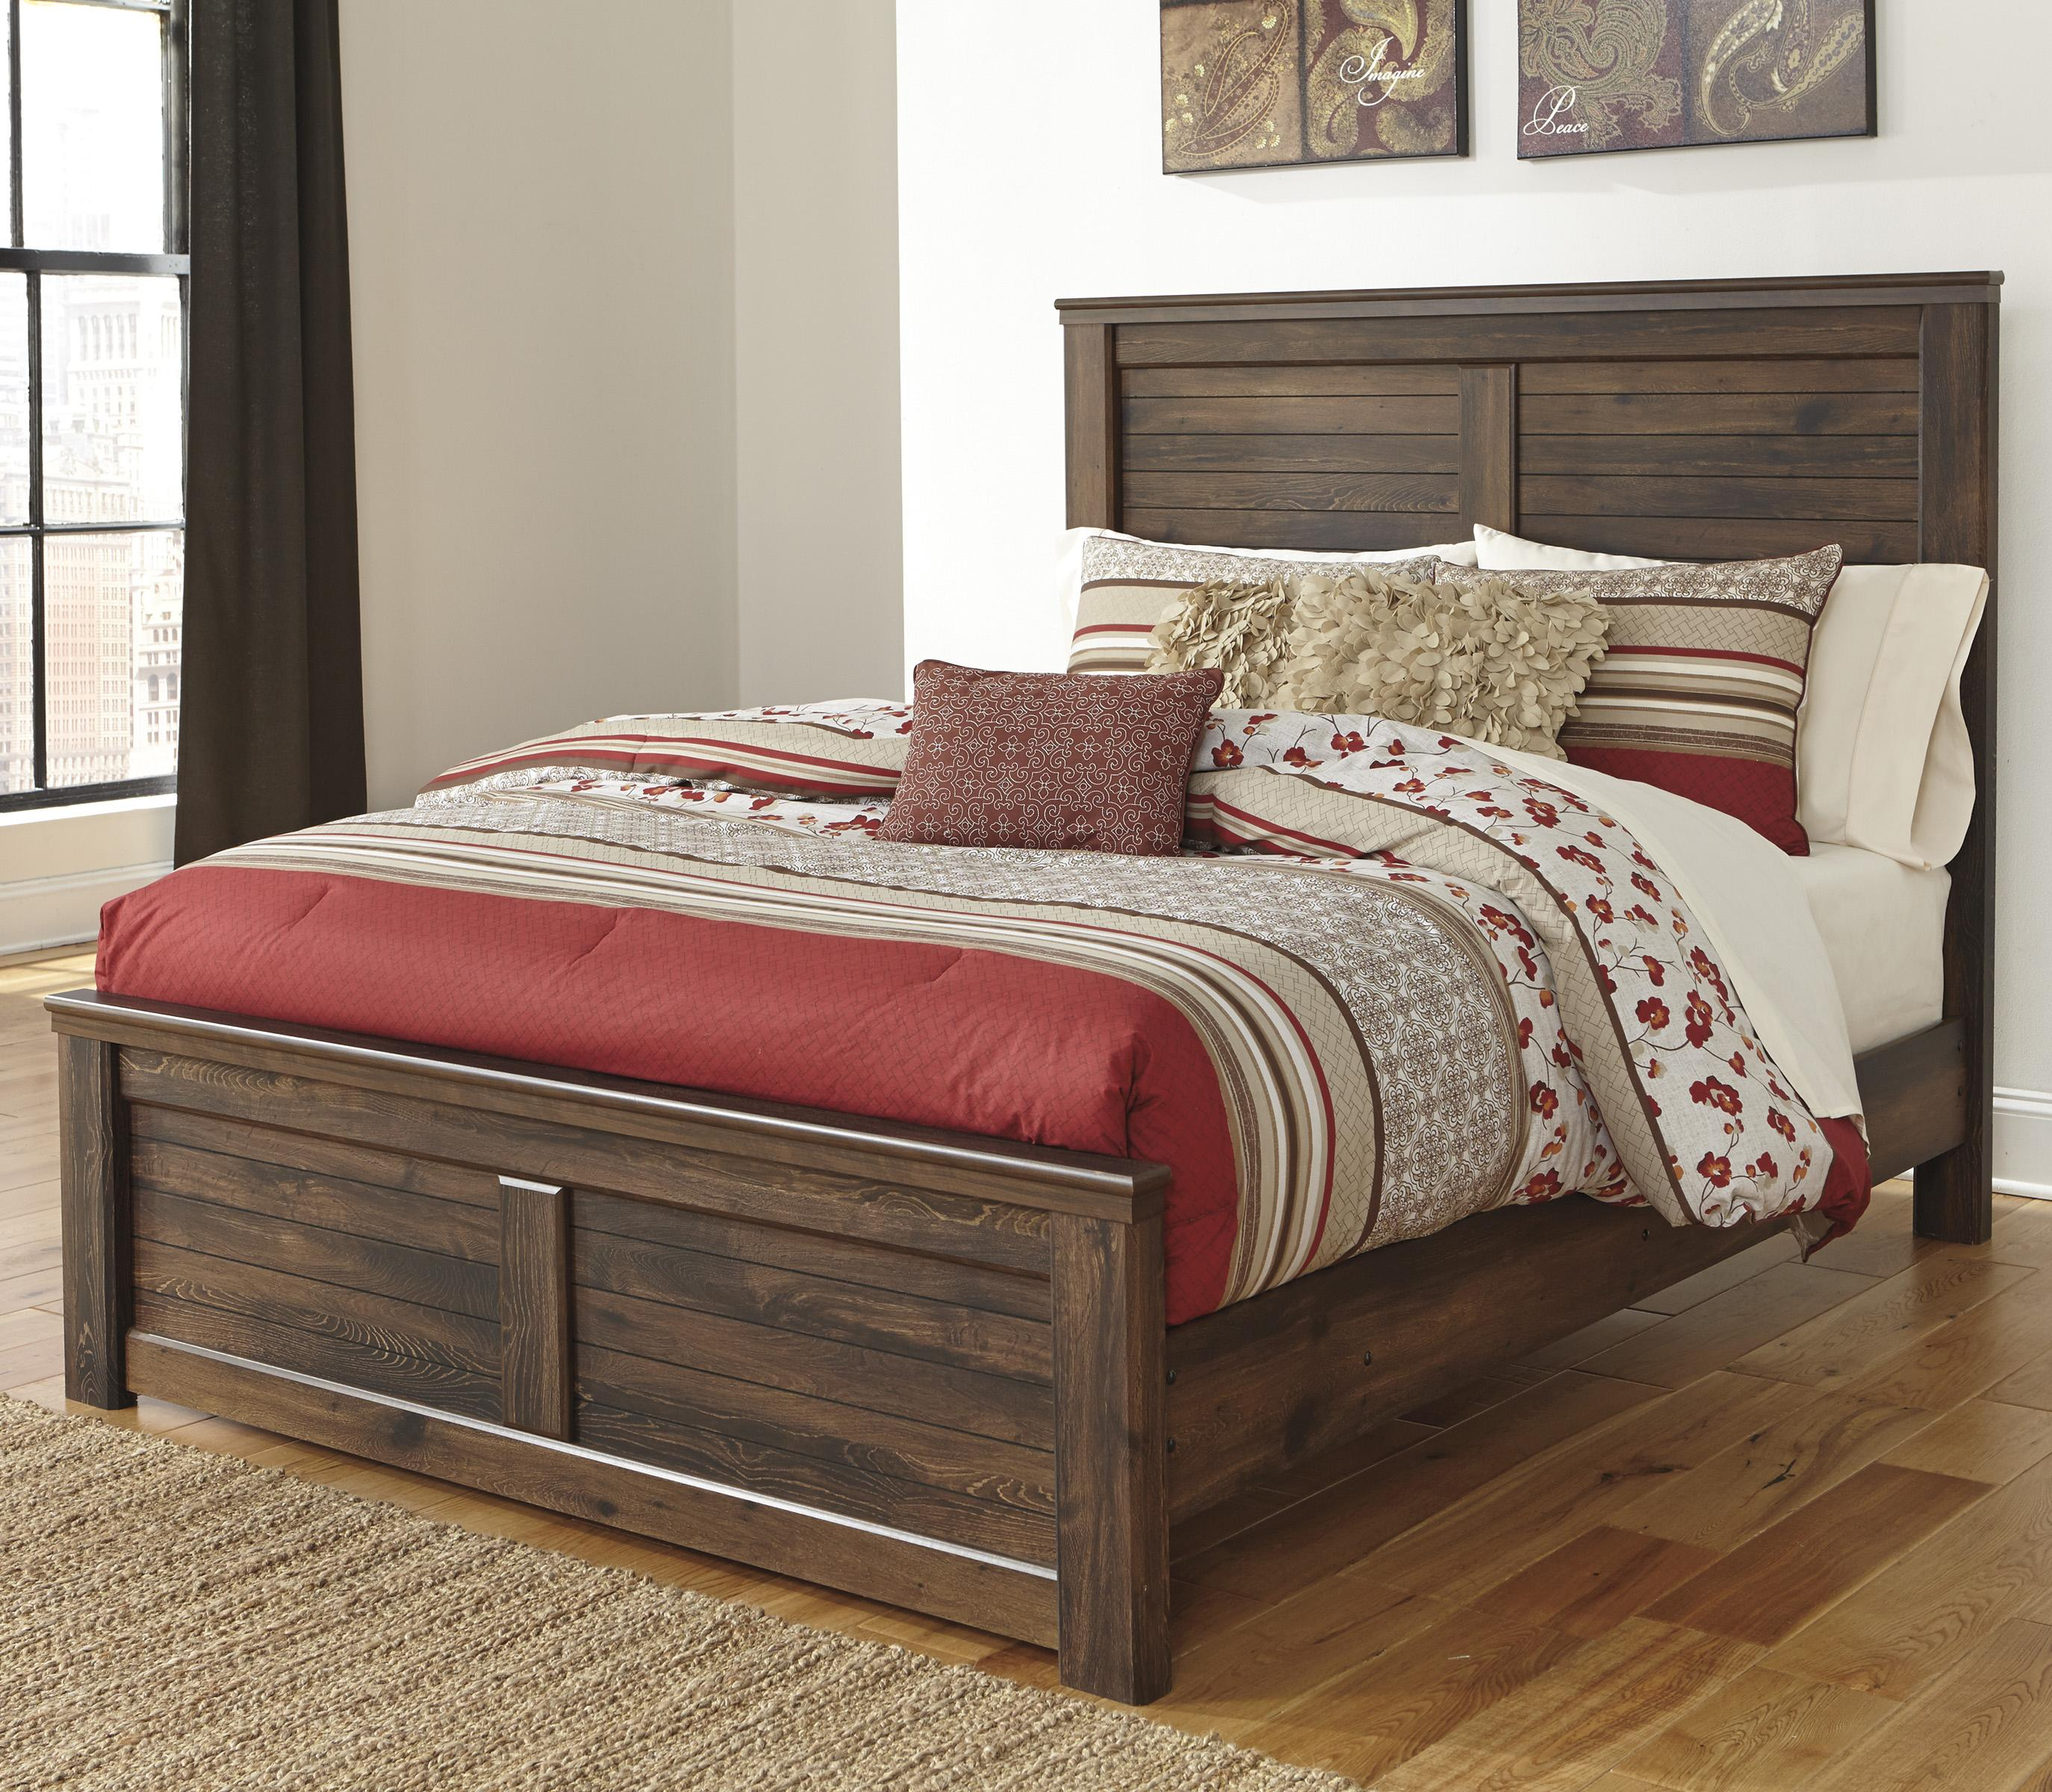 Queen Panel Bed With Low-Profile Footboard By Signature